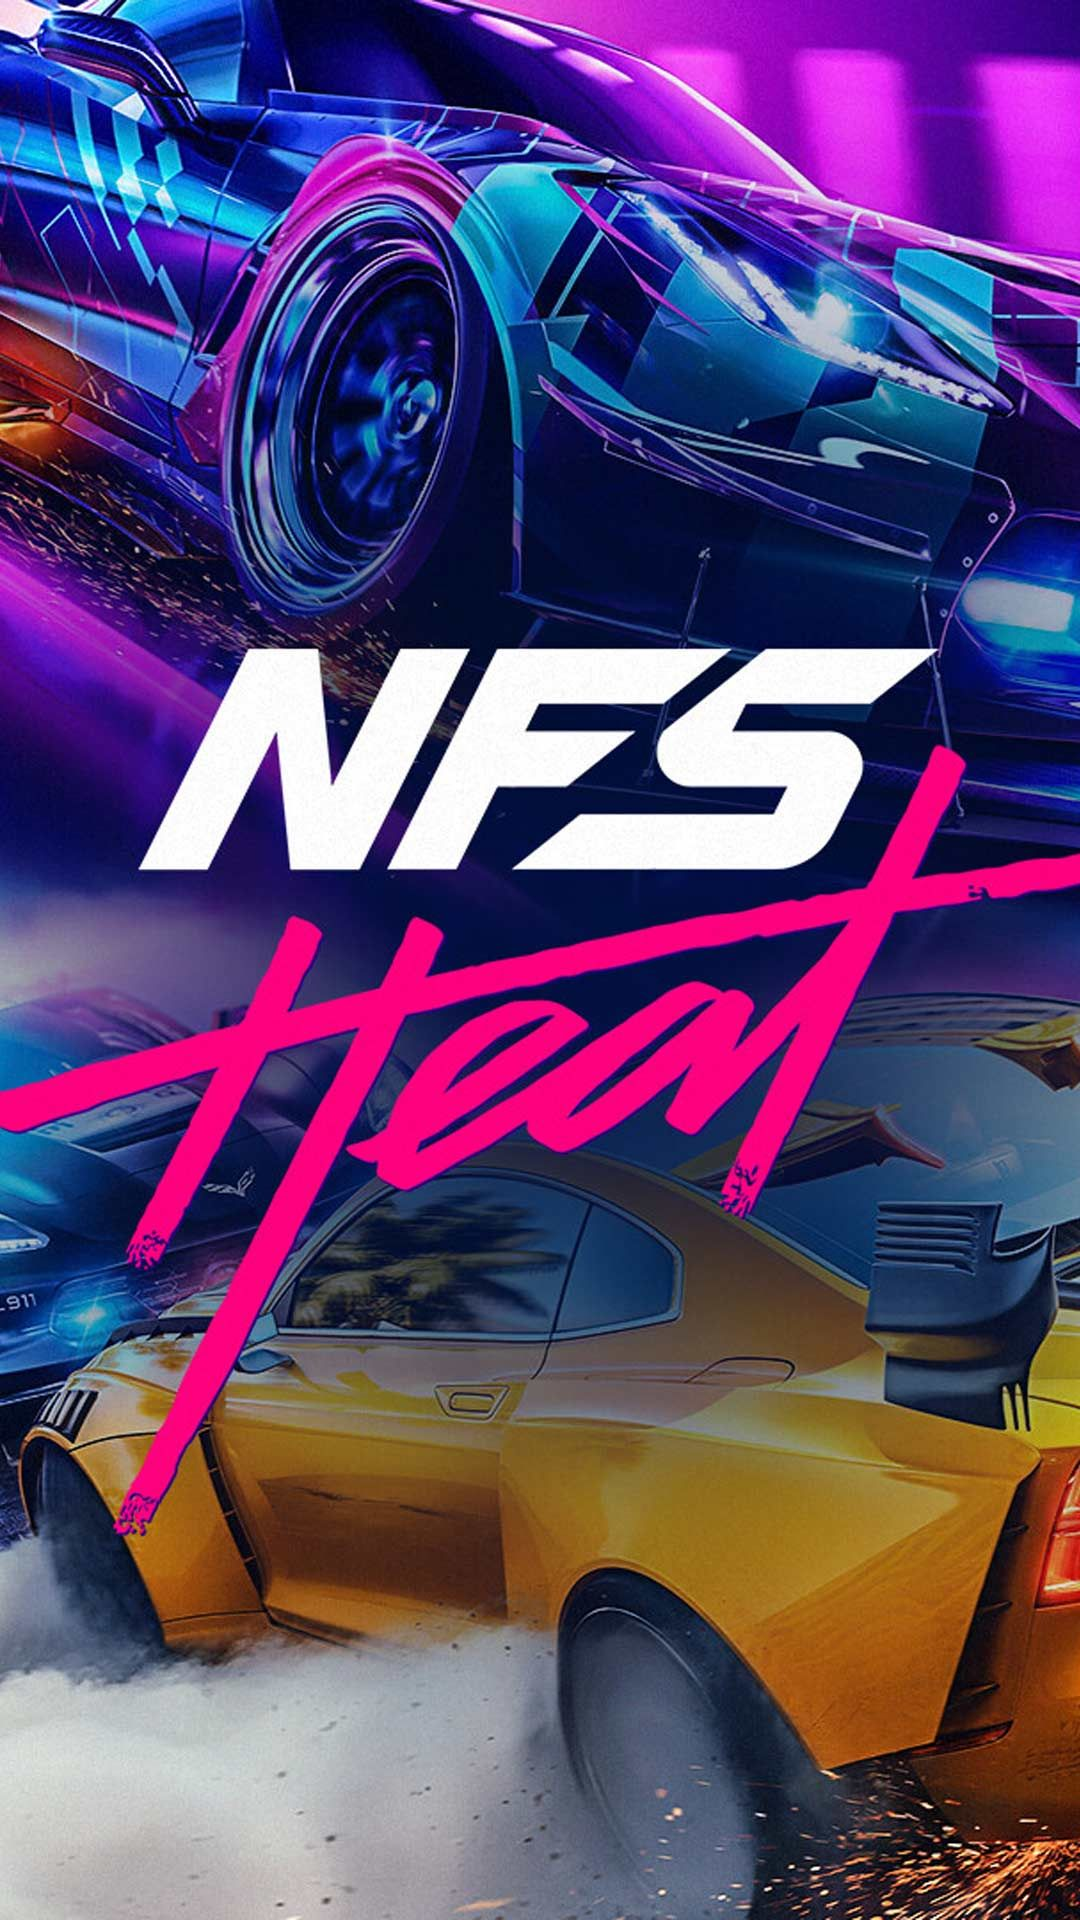 Need For Speed Heat Wallpaper Hd Phone Backgrounds Cars Poster Art On Iphone Android Lock Screen In 2020 Hd Phone Backgrounds Need For Speed Need For Speed Cars